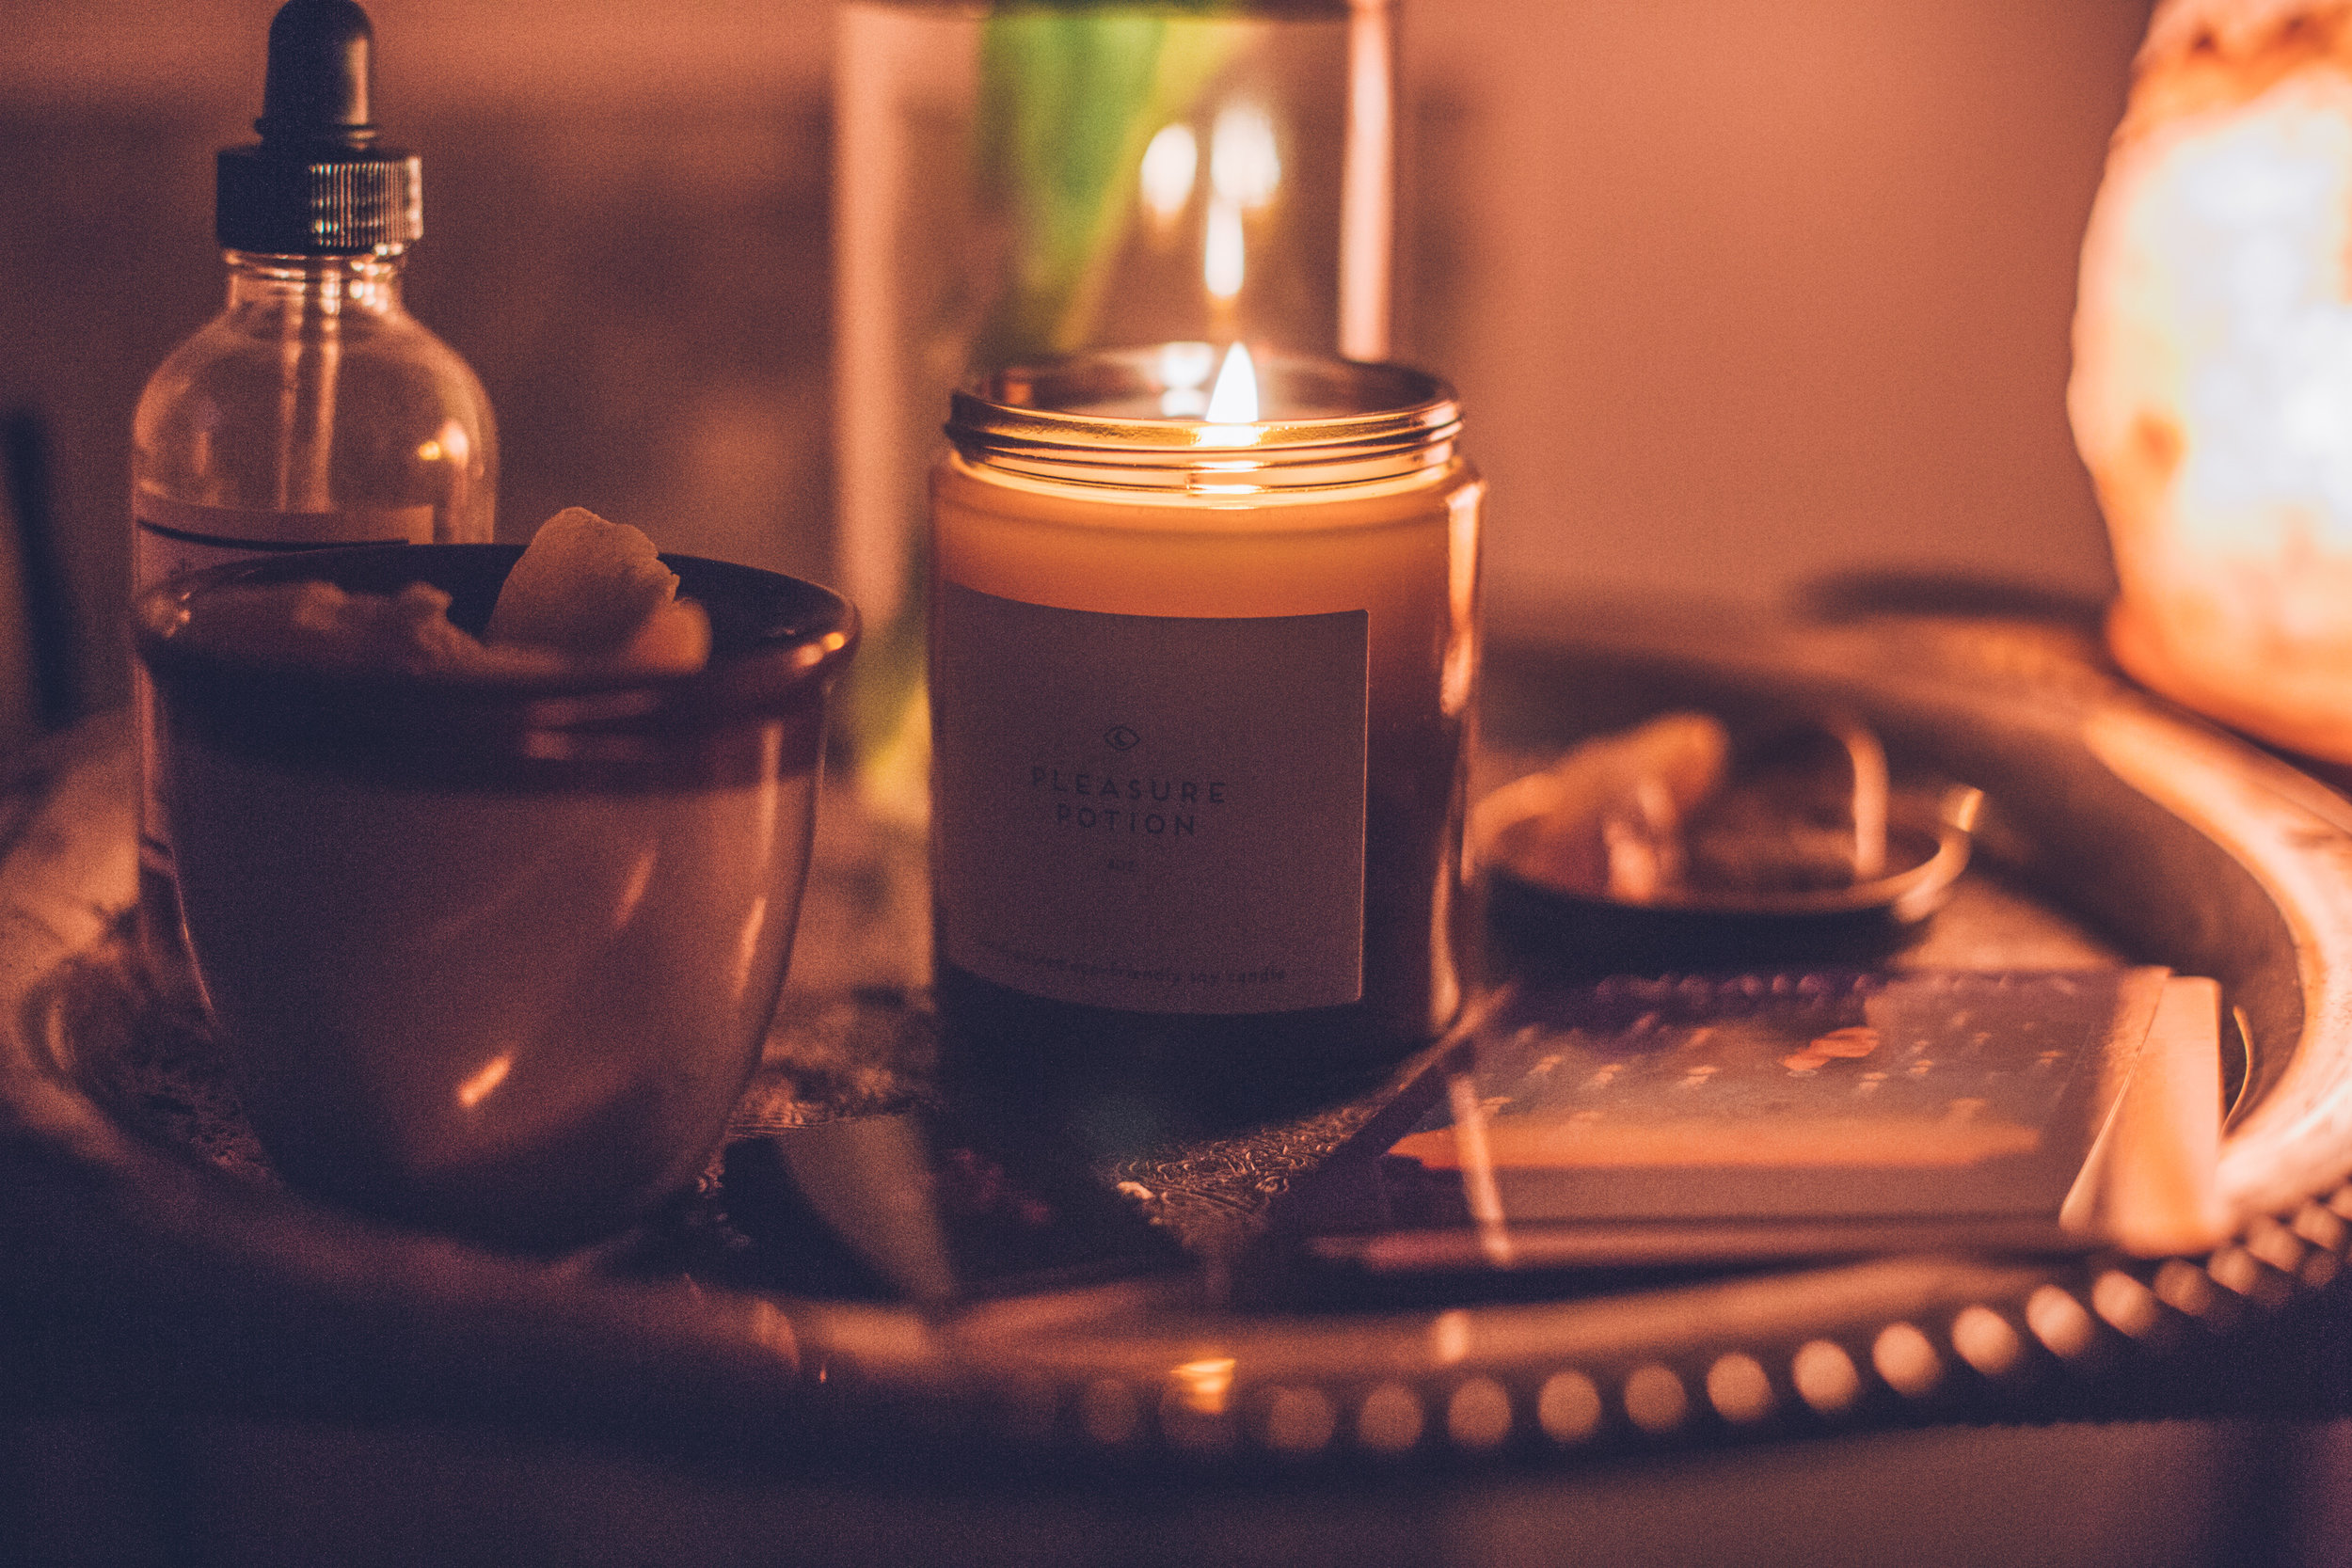 [Photograph of a lit candle surrounded by cards, a bottle of oil and a Himalayan salt lamp]